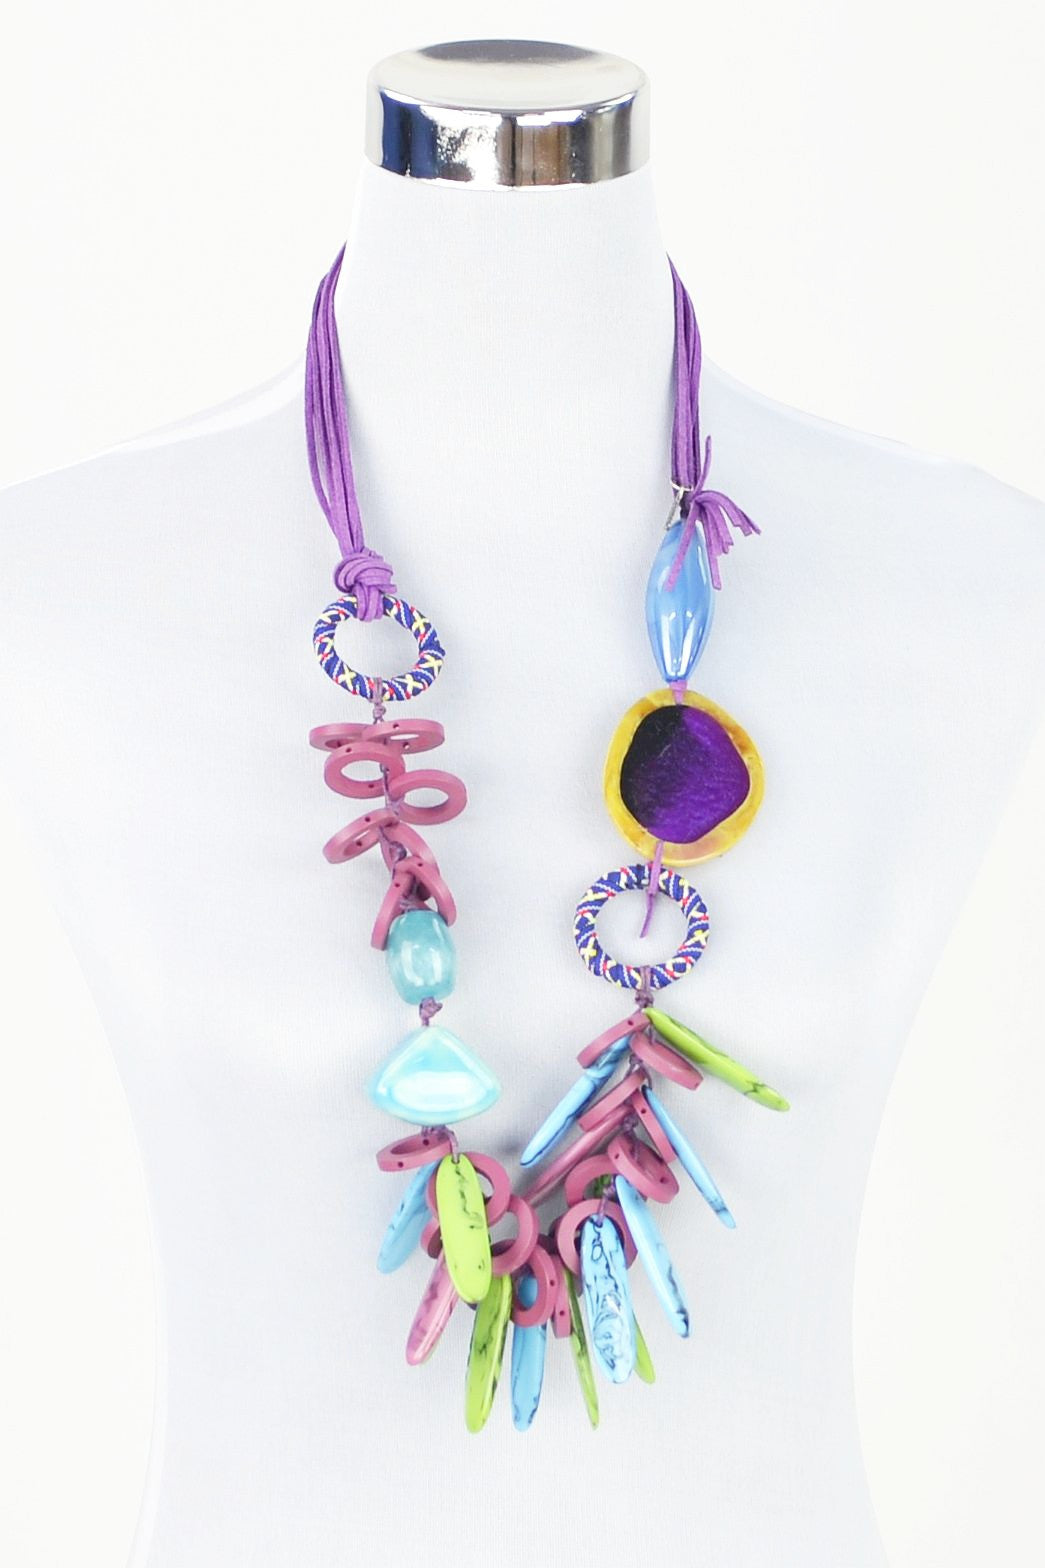 Pollys Purple Necklace - at I Love Tunics @ www.ilovetunics.com = Number One! Tunics Destination